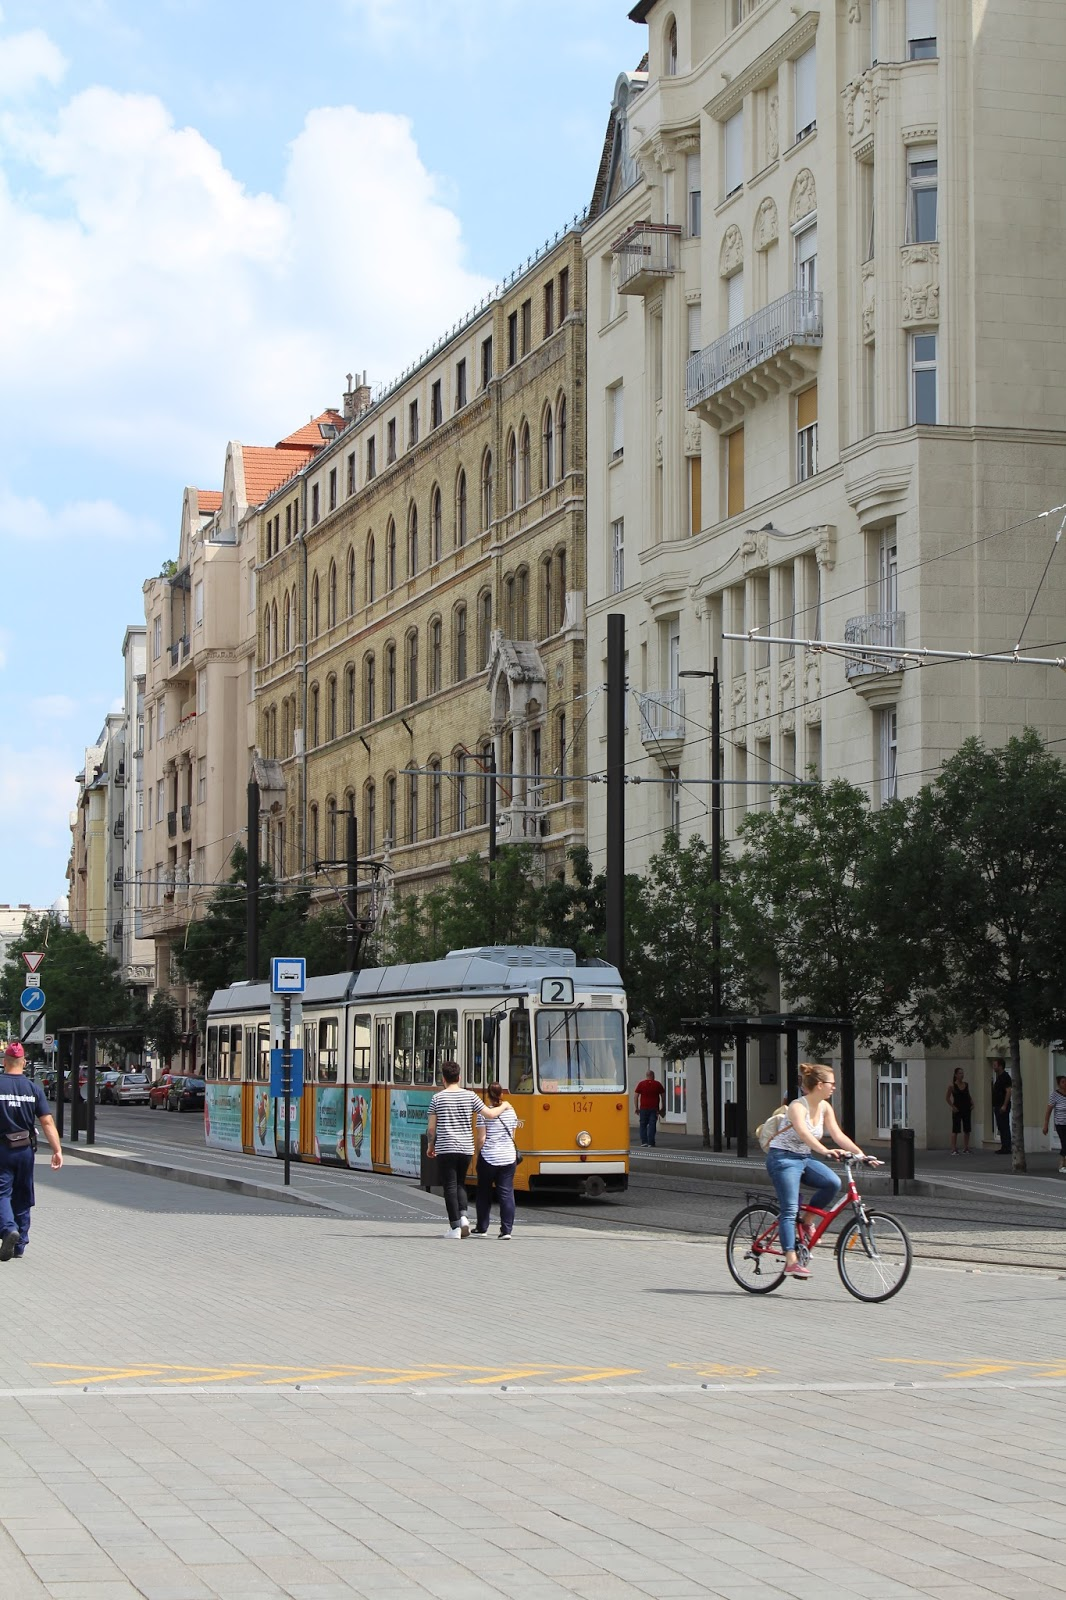 Tram and buildings in Budapest